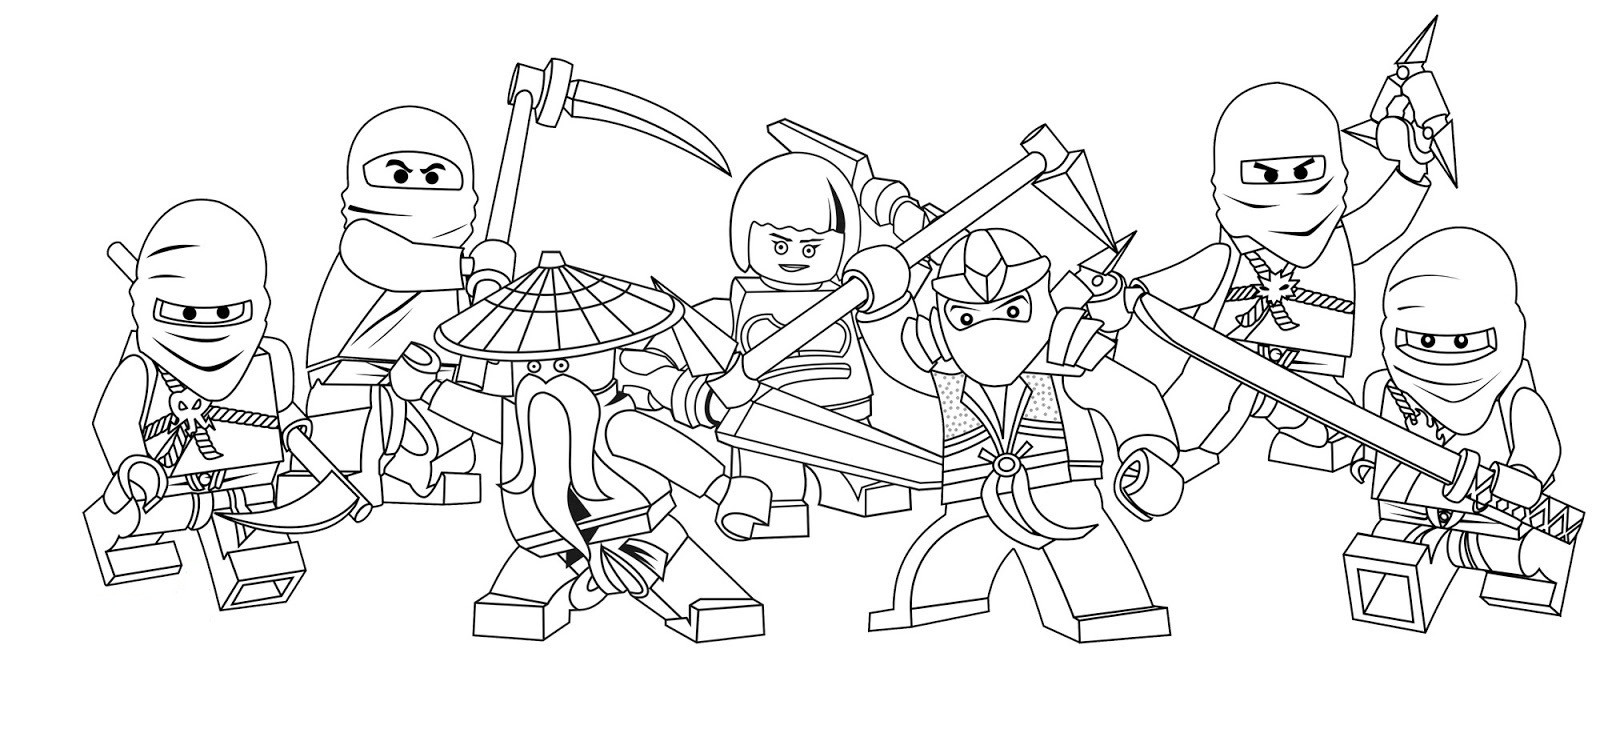 Best ideas about Ninjago Printable Coloring Sheets . Save or Pin Free Printable Ninjago Coloring Pages For Kids Now.